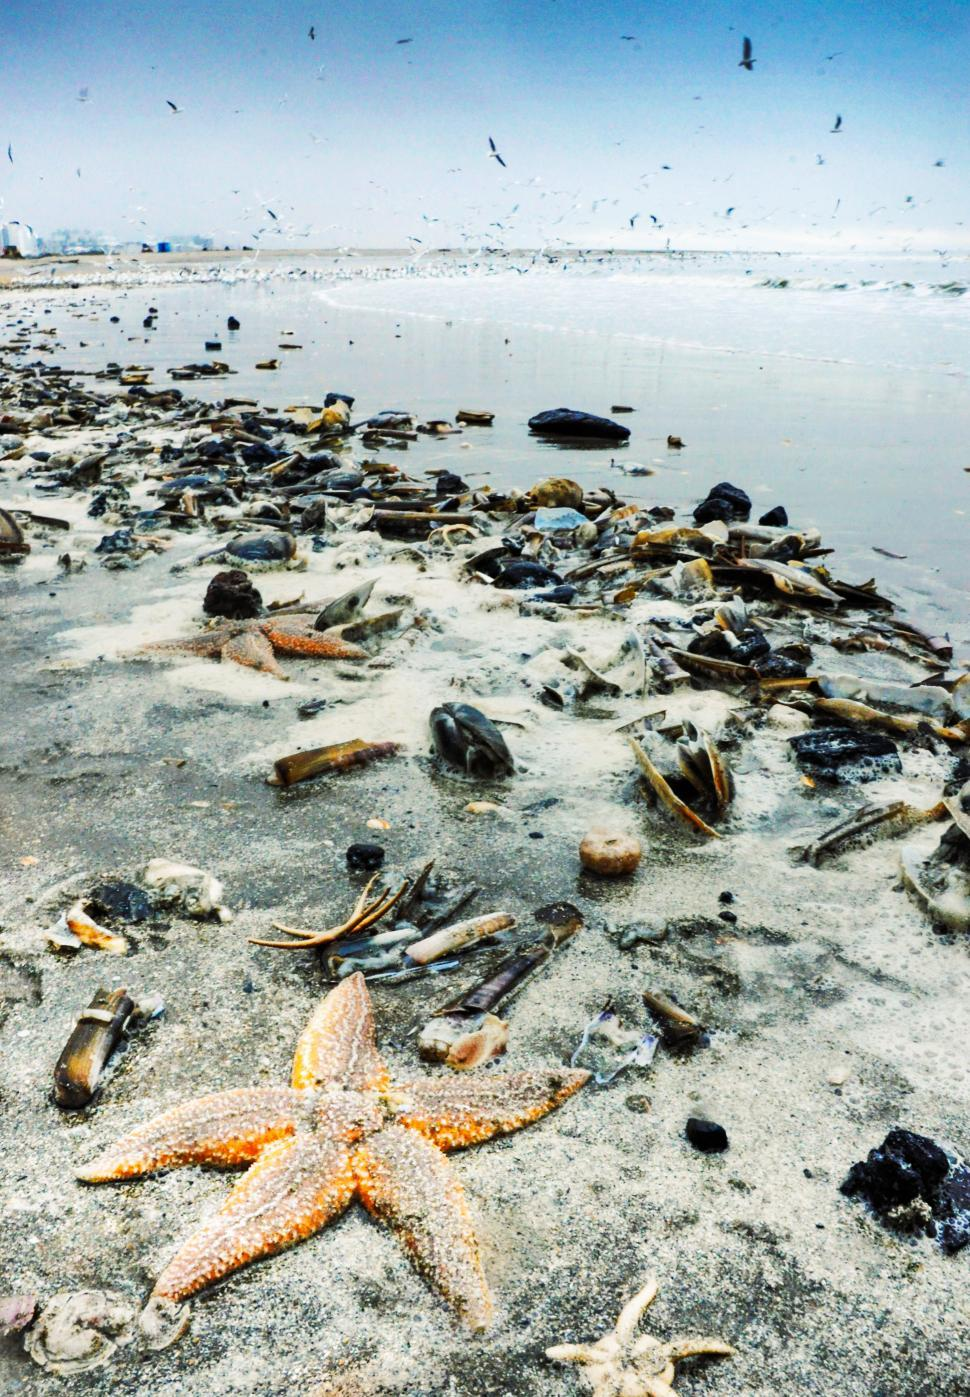 Download Free Stock Photo of Starfish and shells washed to shore